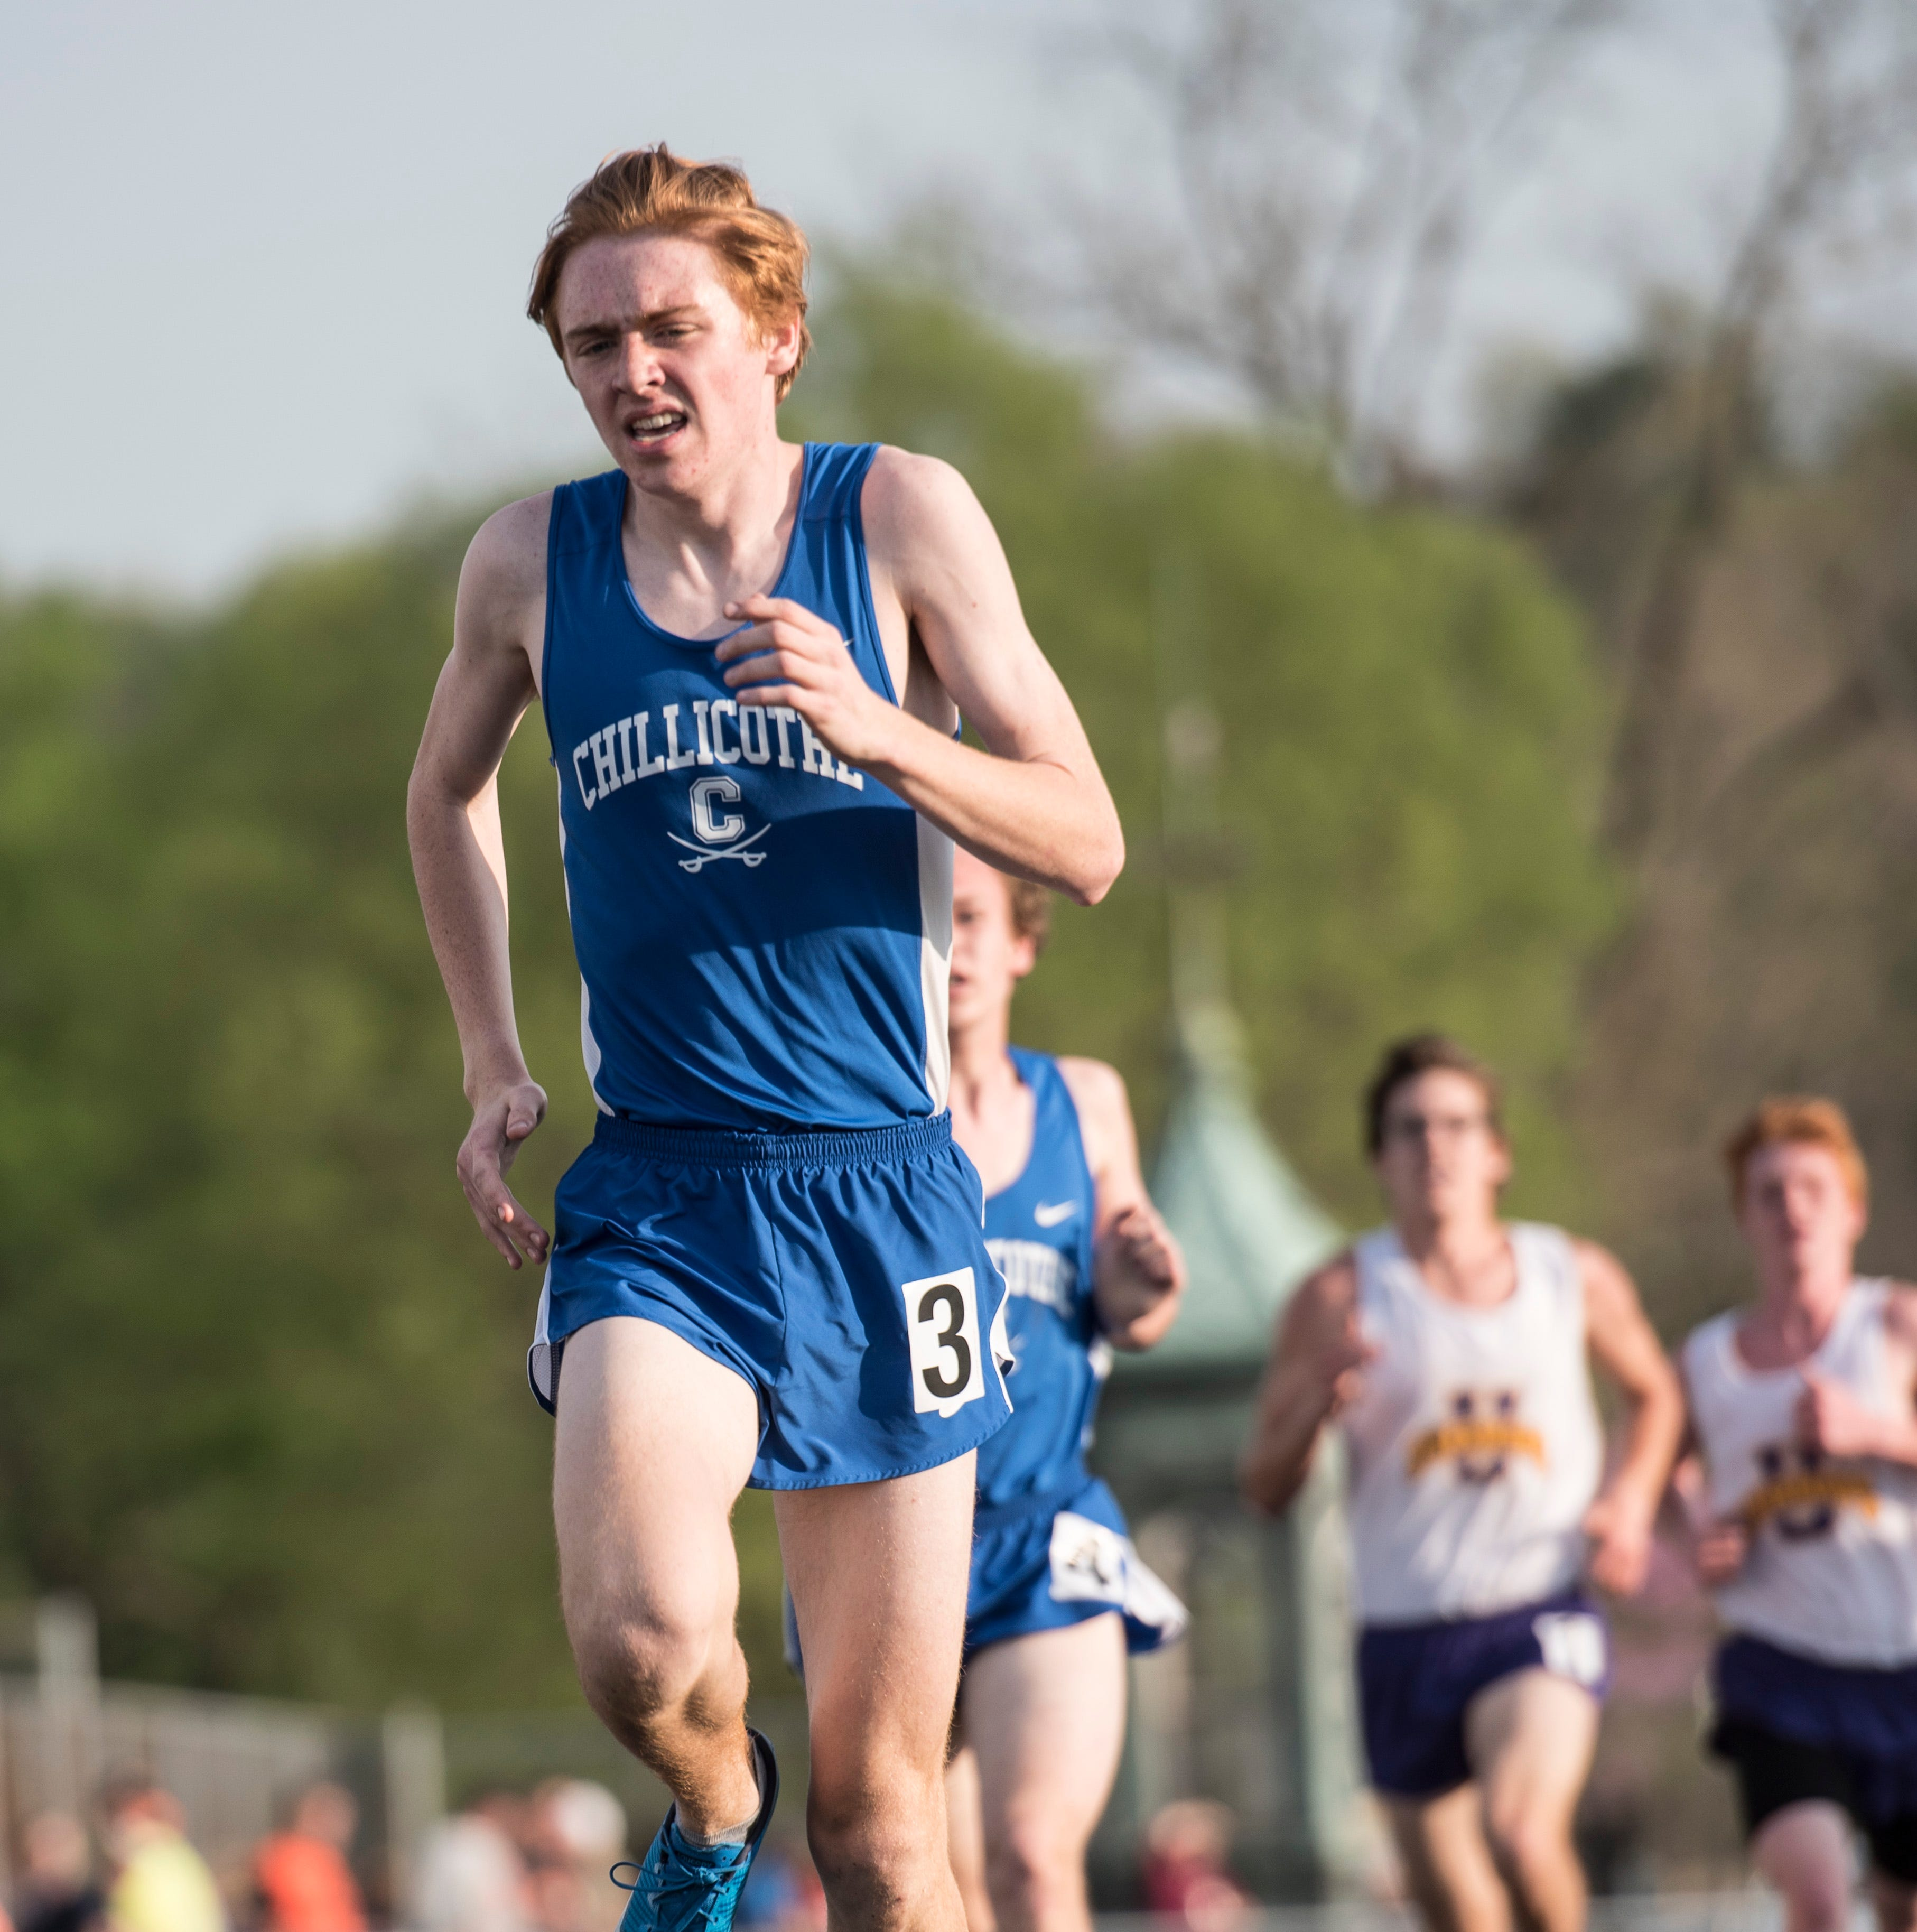 DAILY DIGEST: Chillicothe boys track and field win Cavalier Invitational